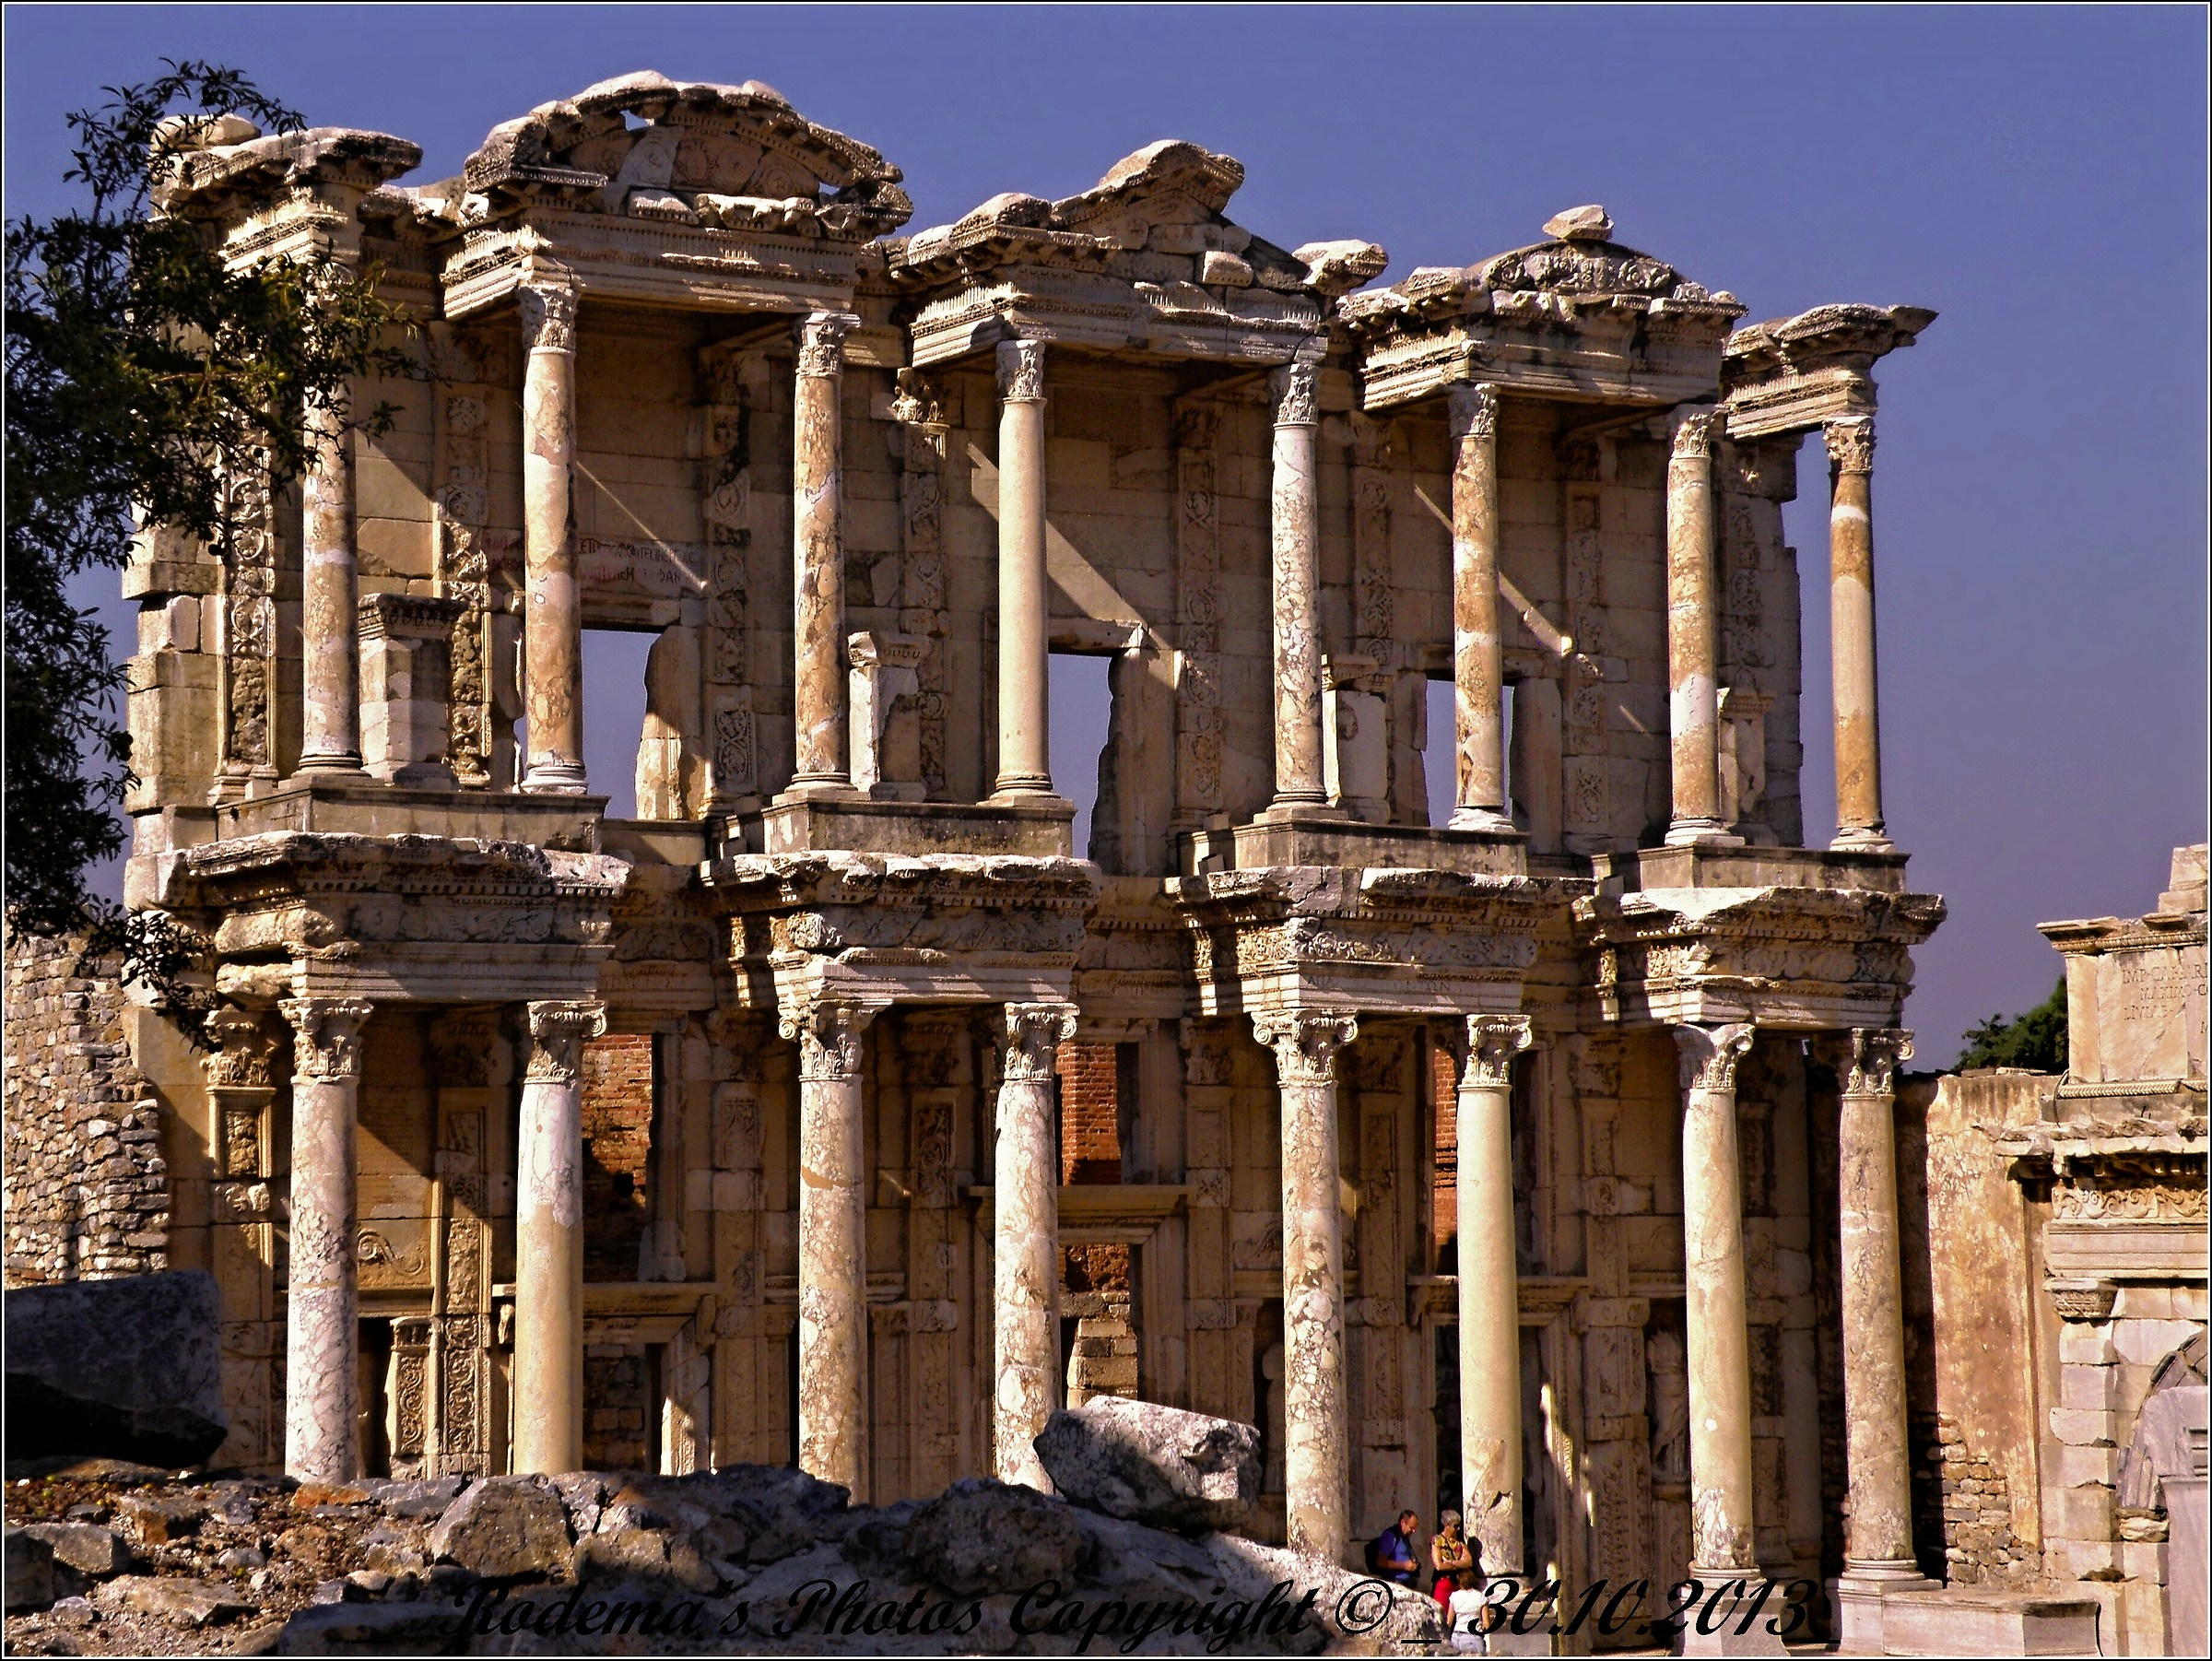 The library of Celsus...